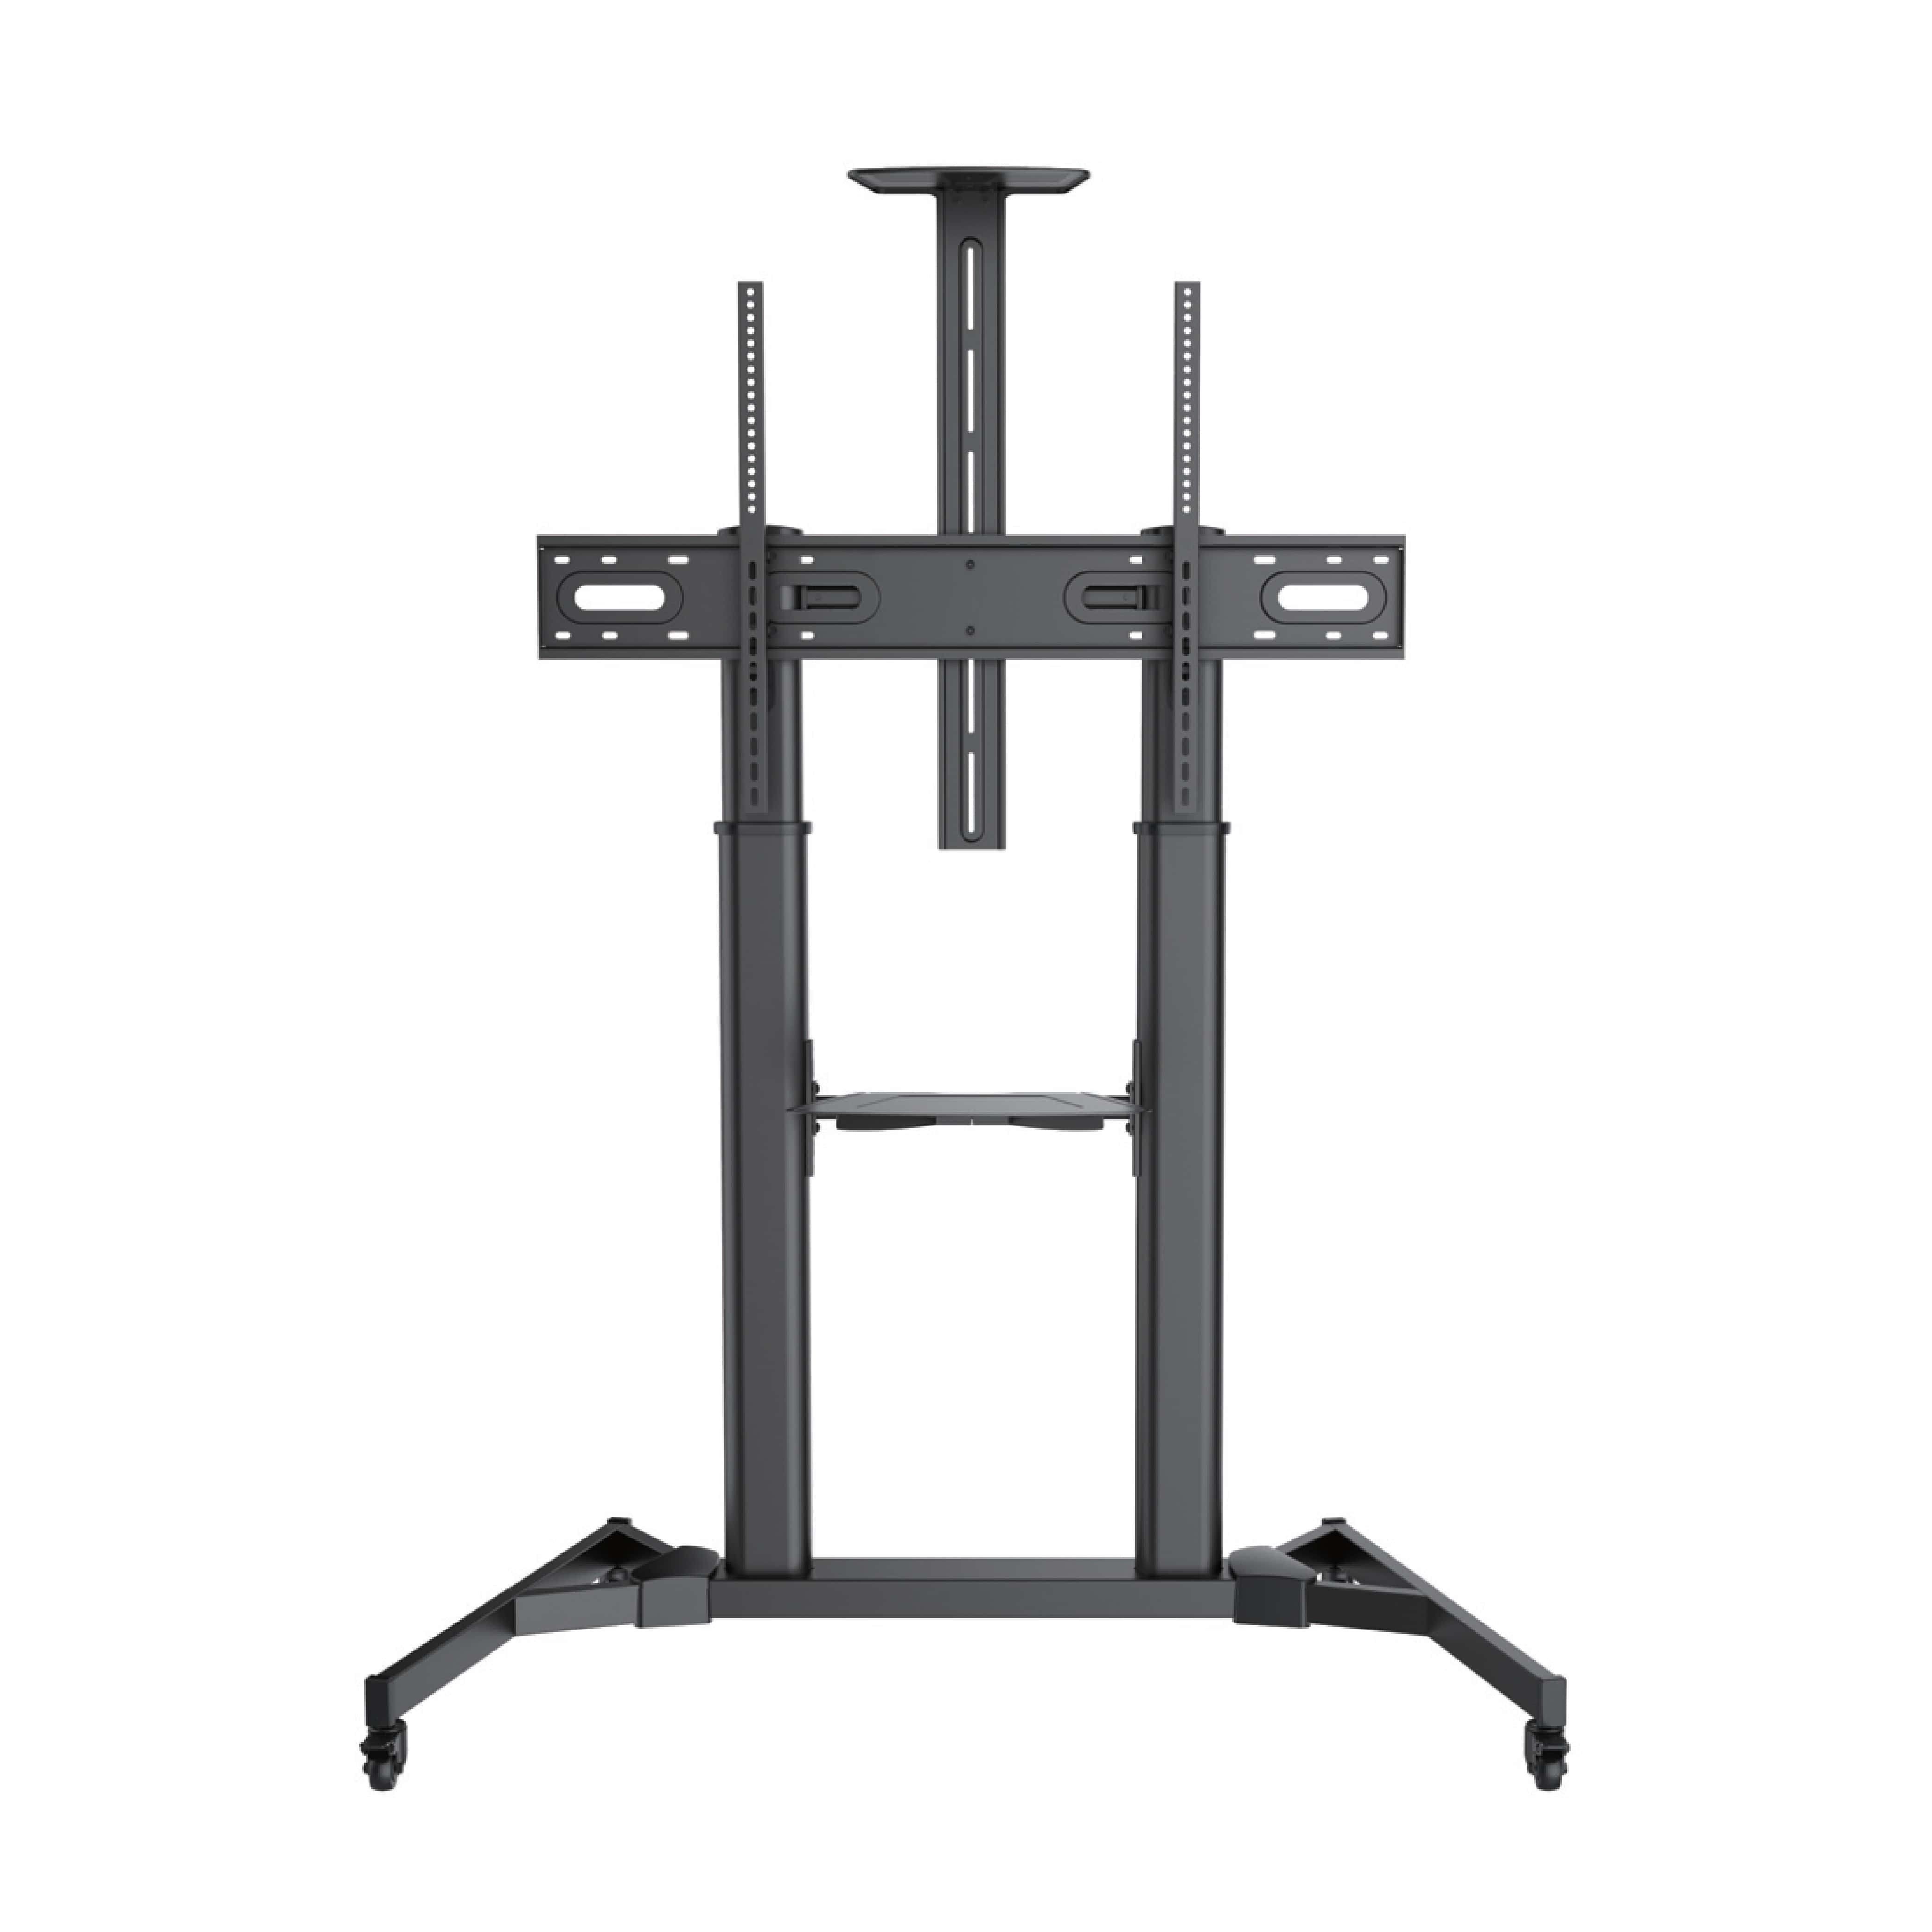 60″ to 100″ Flat Panel LED LCD TV Height Adjustable Movable TV Stand Cart TTL03-610TW | True Vision Philippines